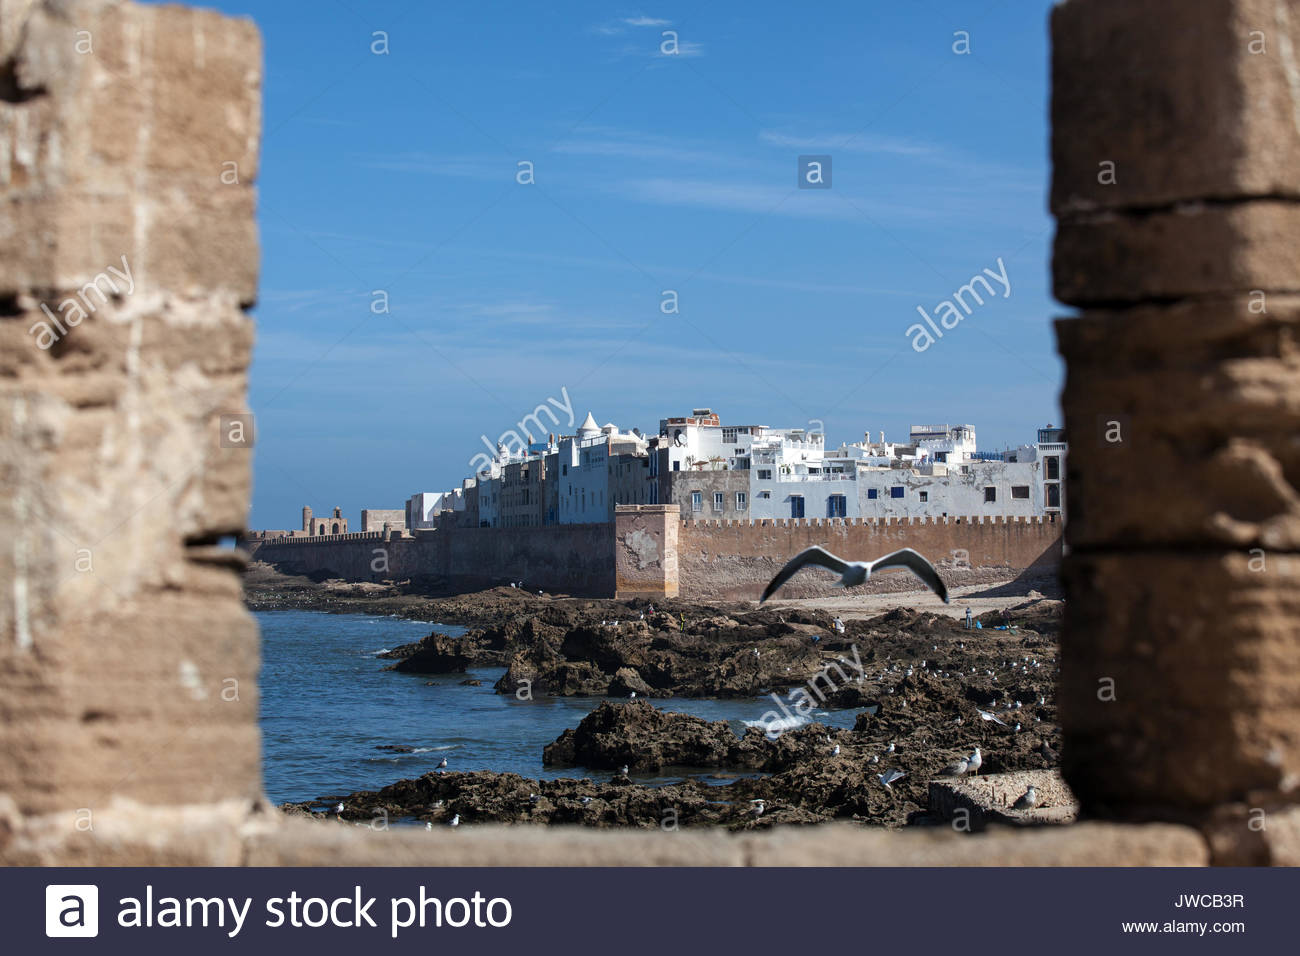 A seagull soars near the walled city of Essaouira,Morocco. - Stock Image